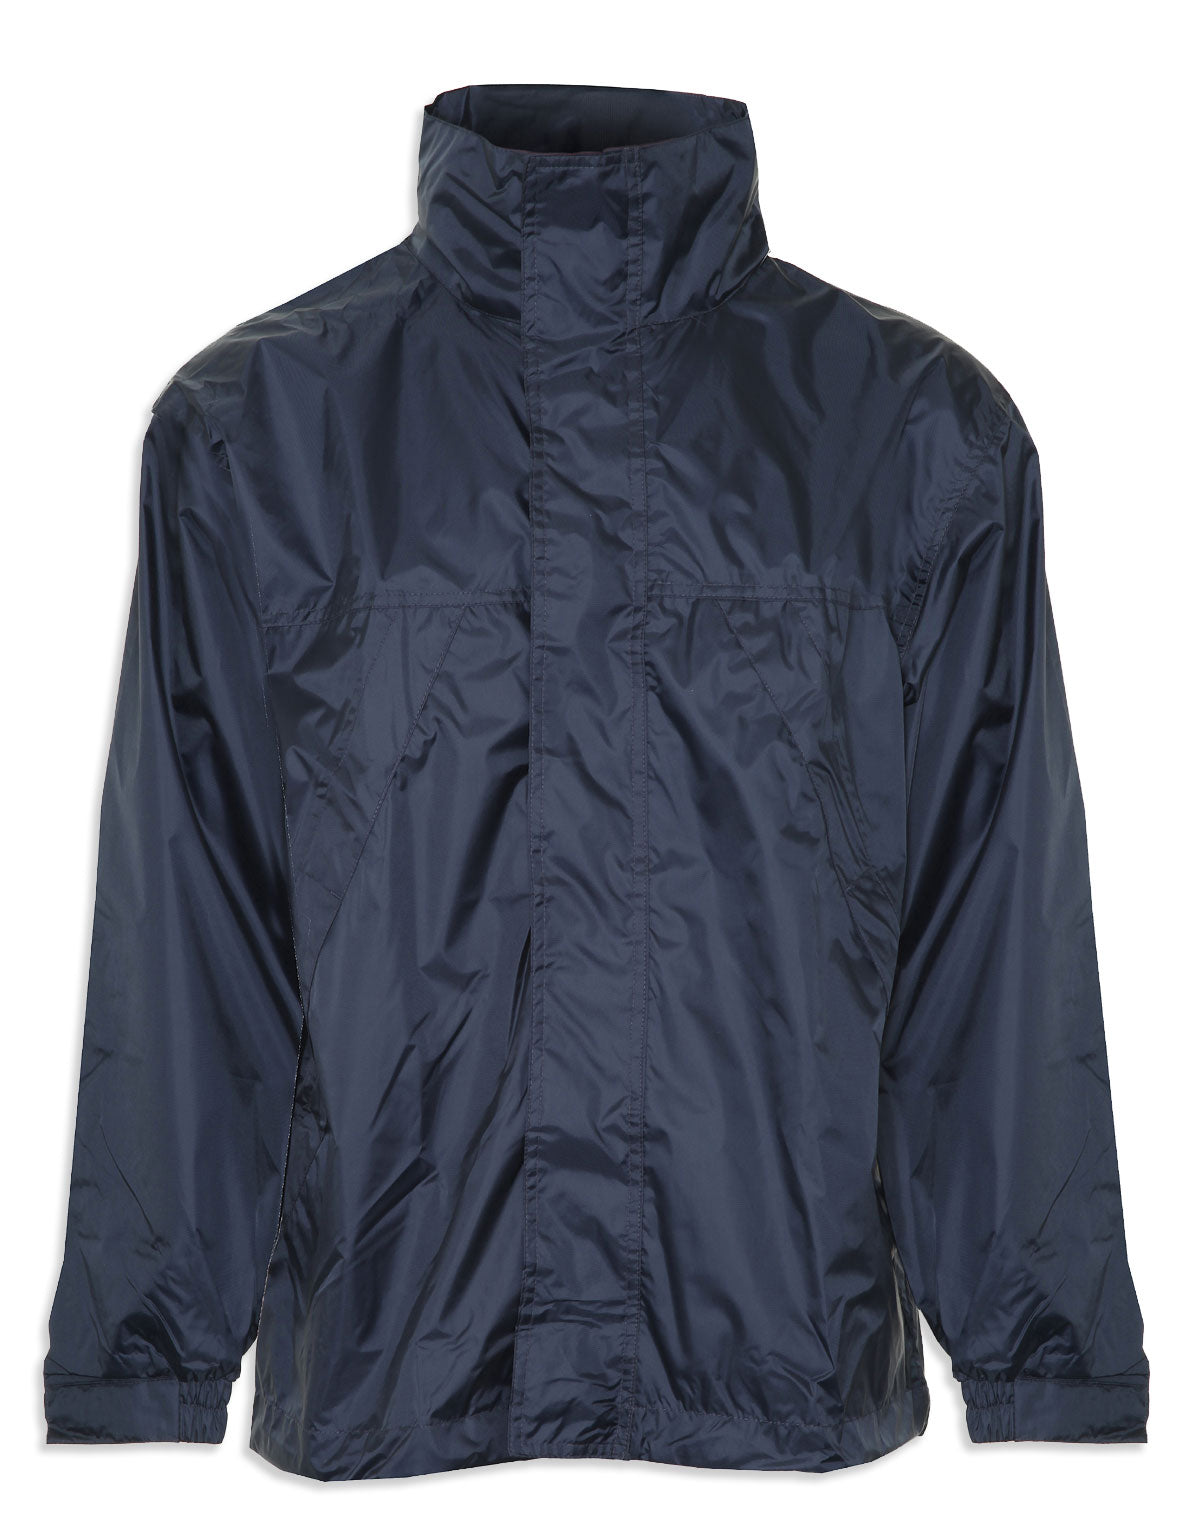 Champion Typhoon Waterproof Shell Jacket.  Navy